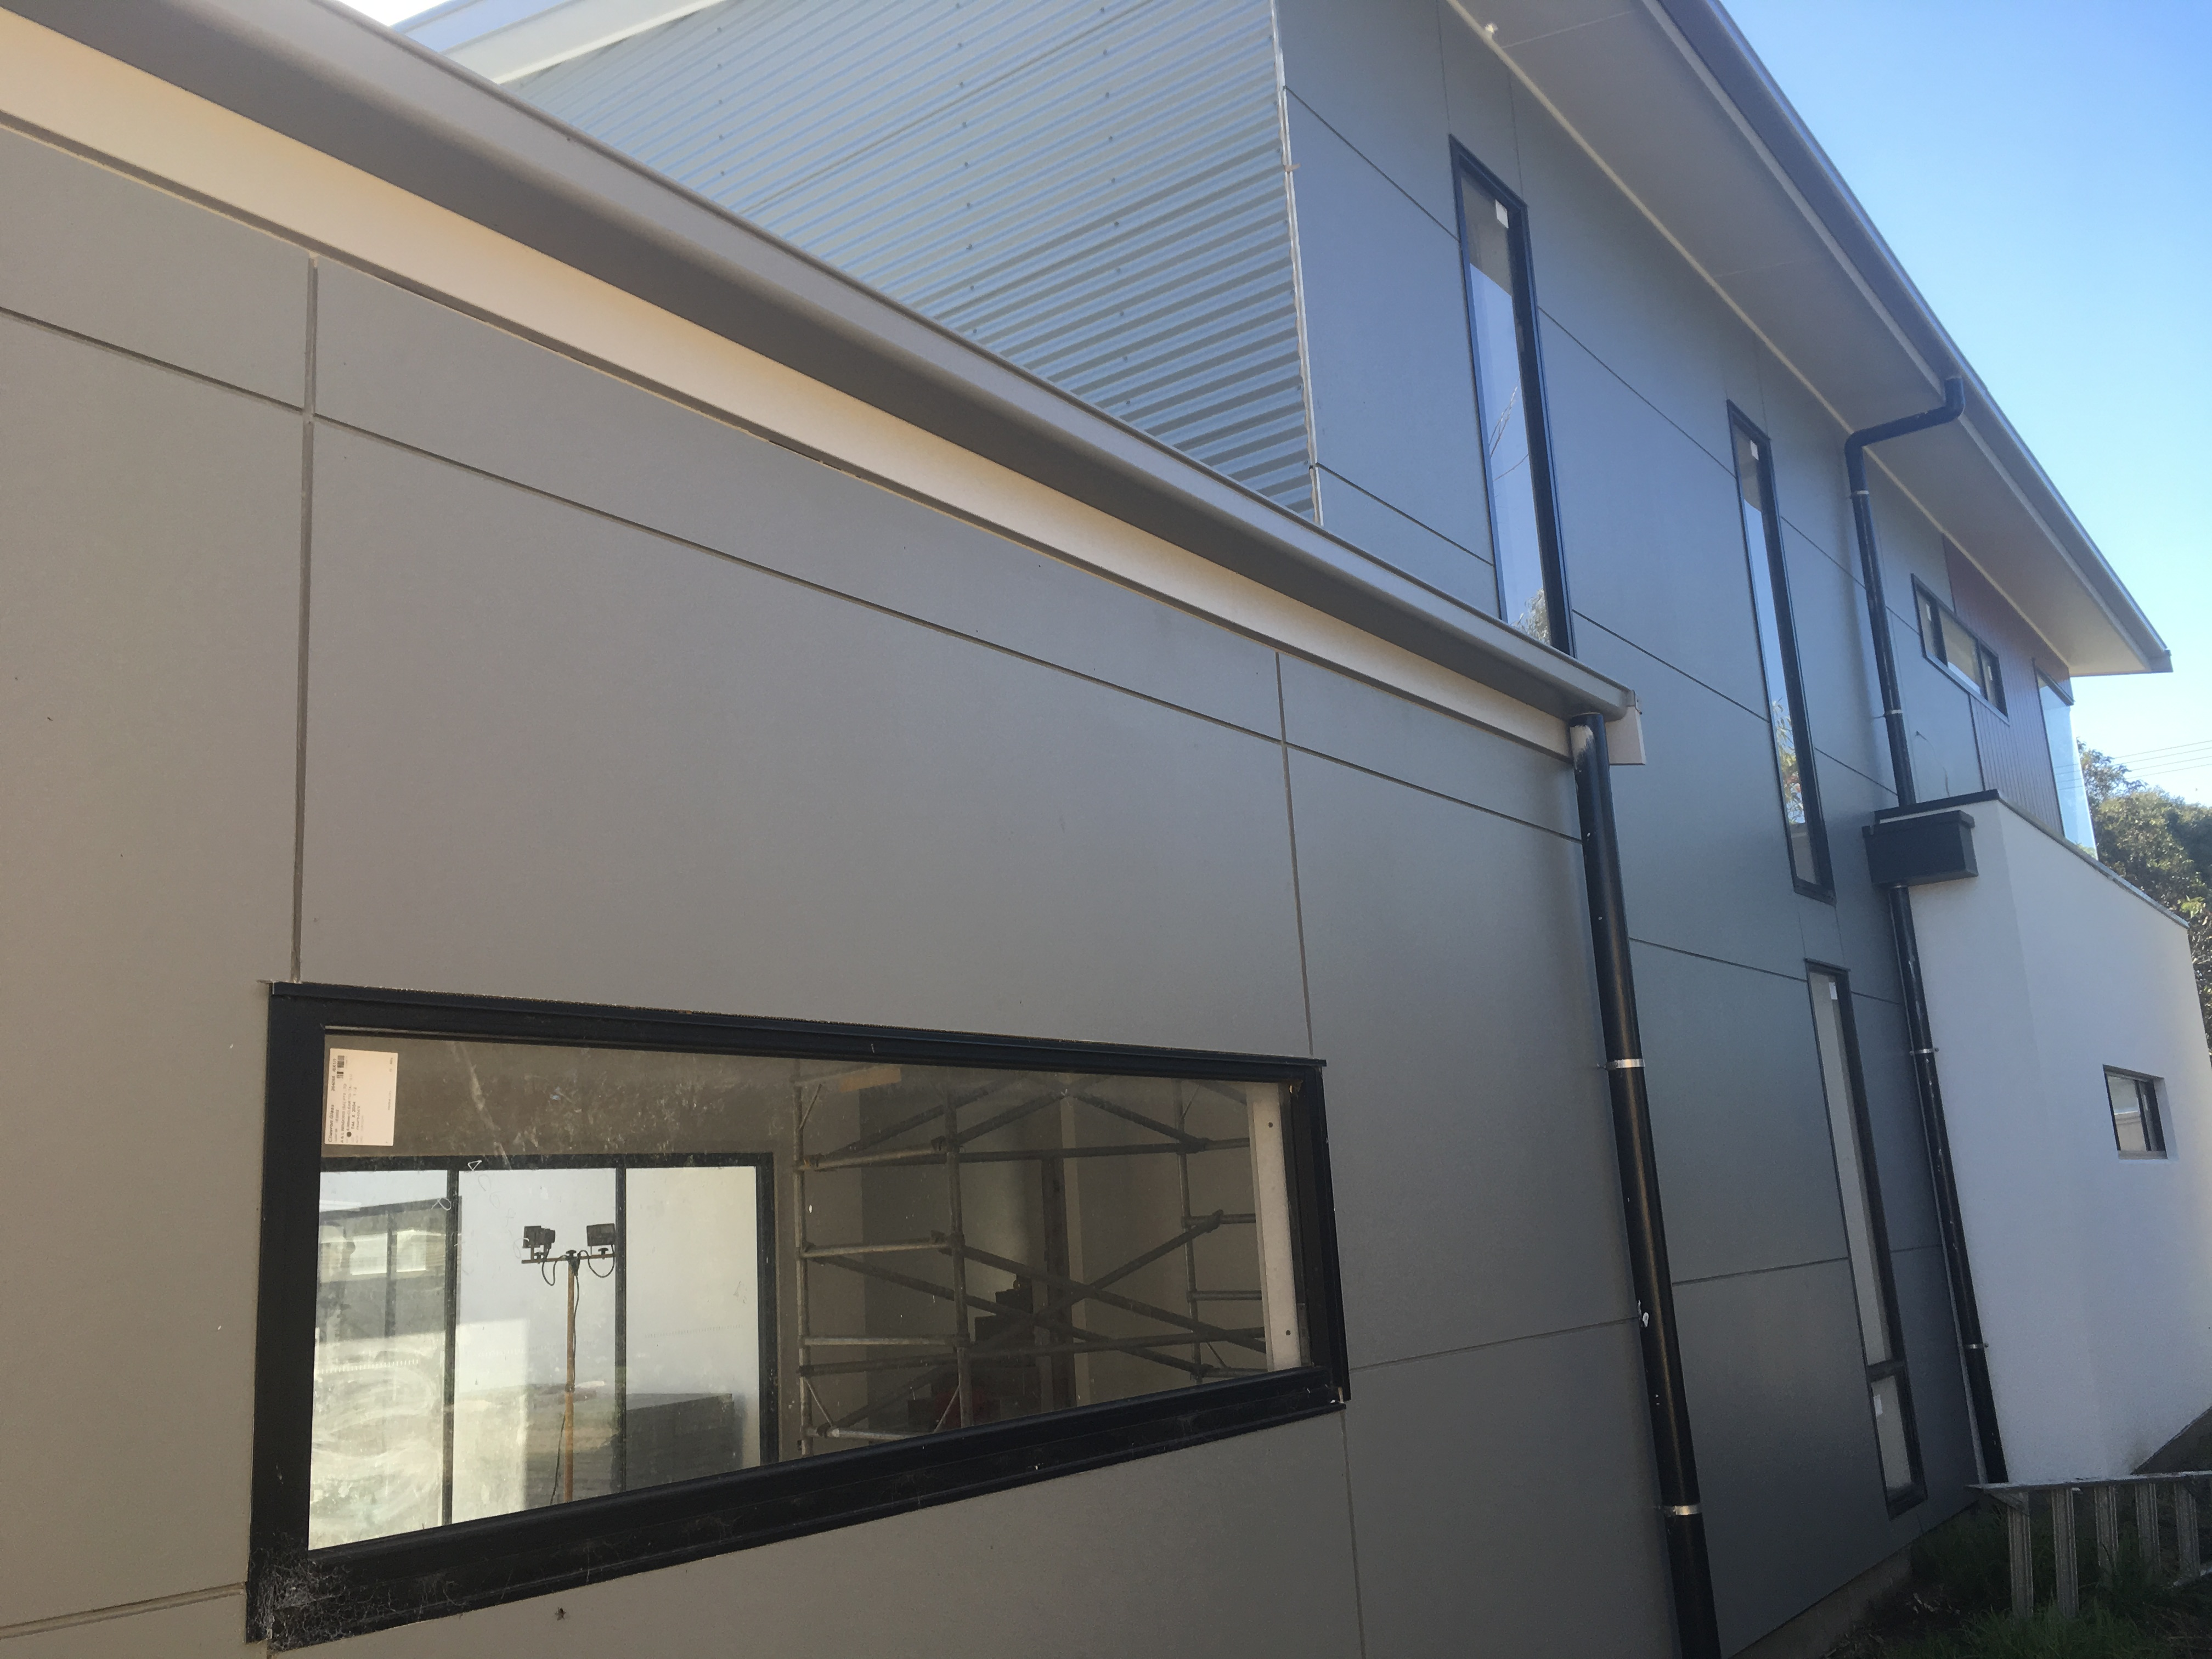 Fibre Cement sheets, megaboard, Sheeting, boards